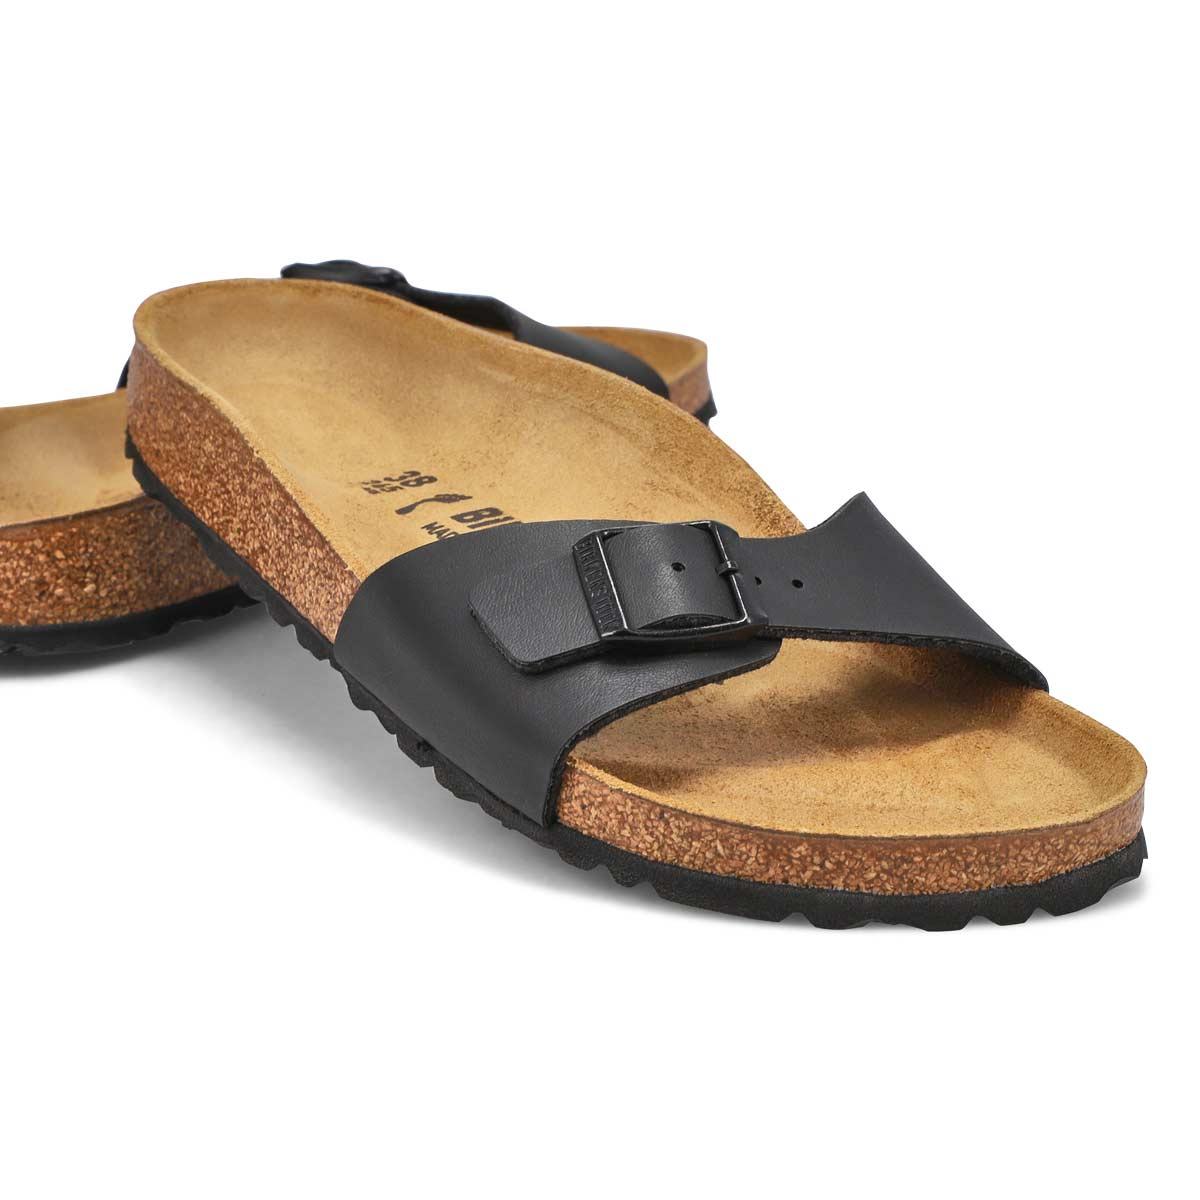 Lds Madrid BF blk 1 strap sandal- Narrow